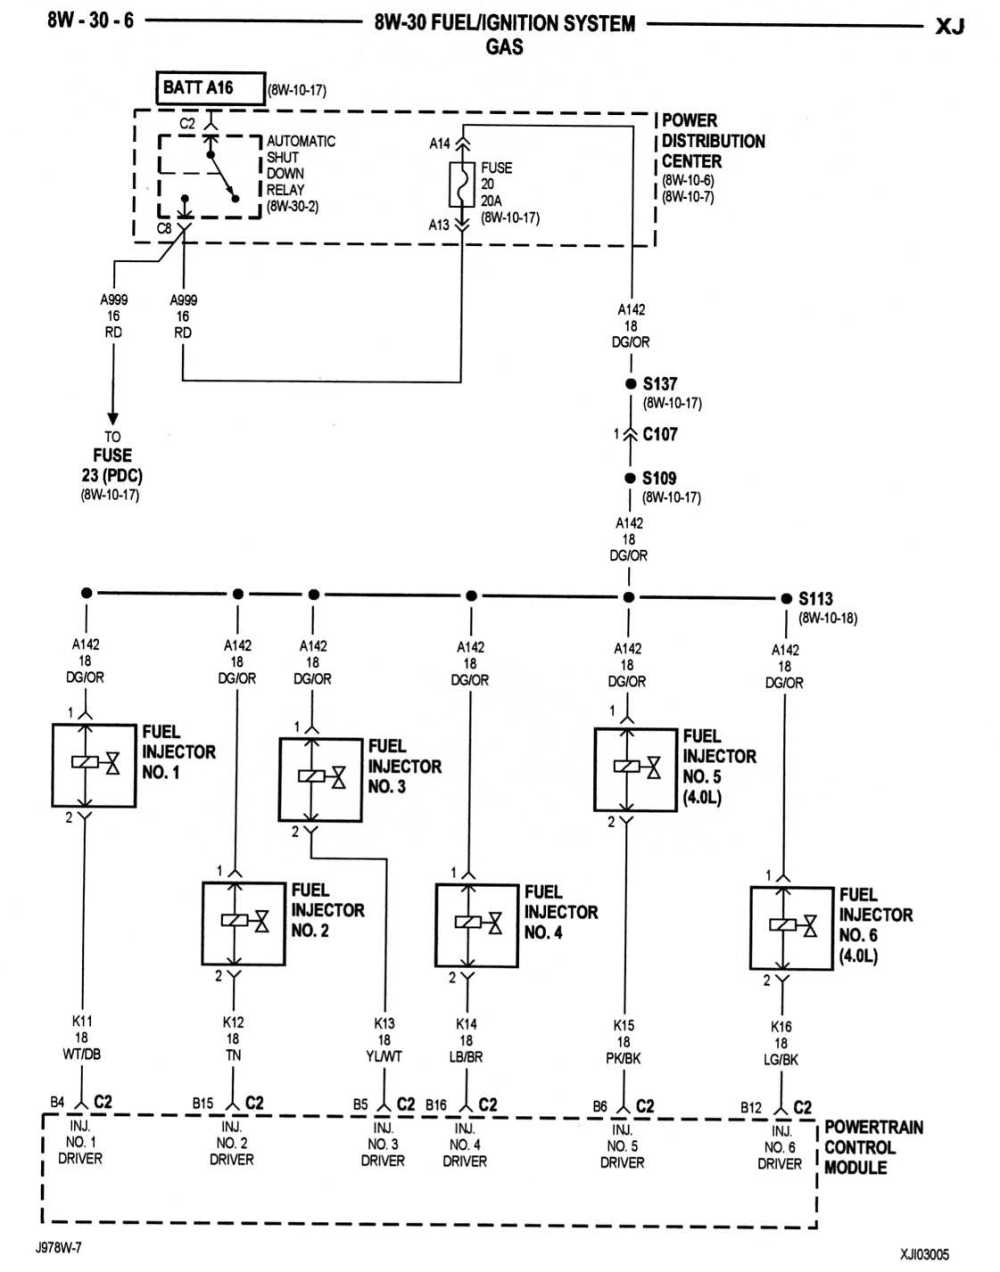 medium resolution of 1997 jeep wrangler fuse diagram fuel injector wiring diagram general 1997 jeep wrangler fuse diagram fuel injector